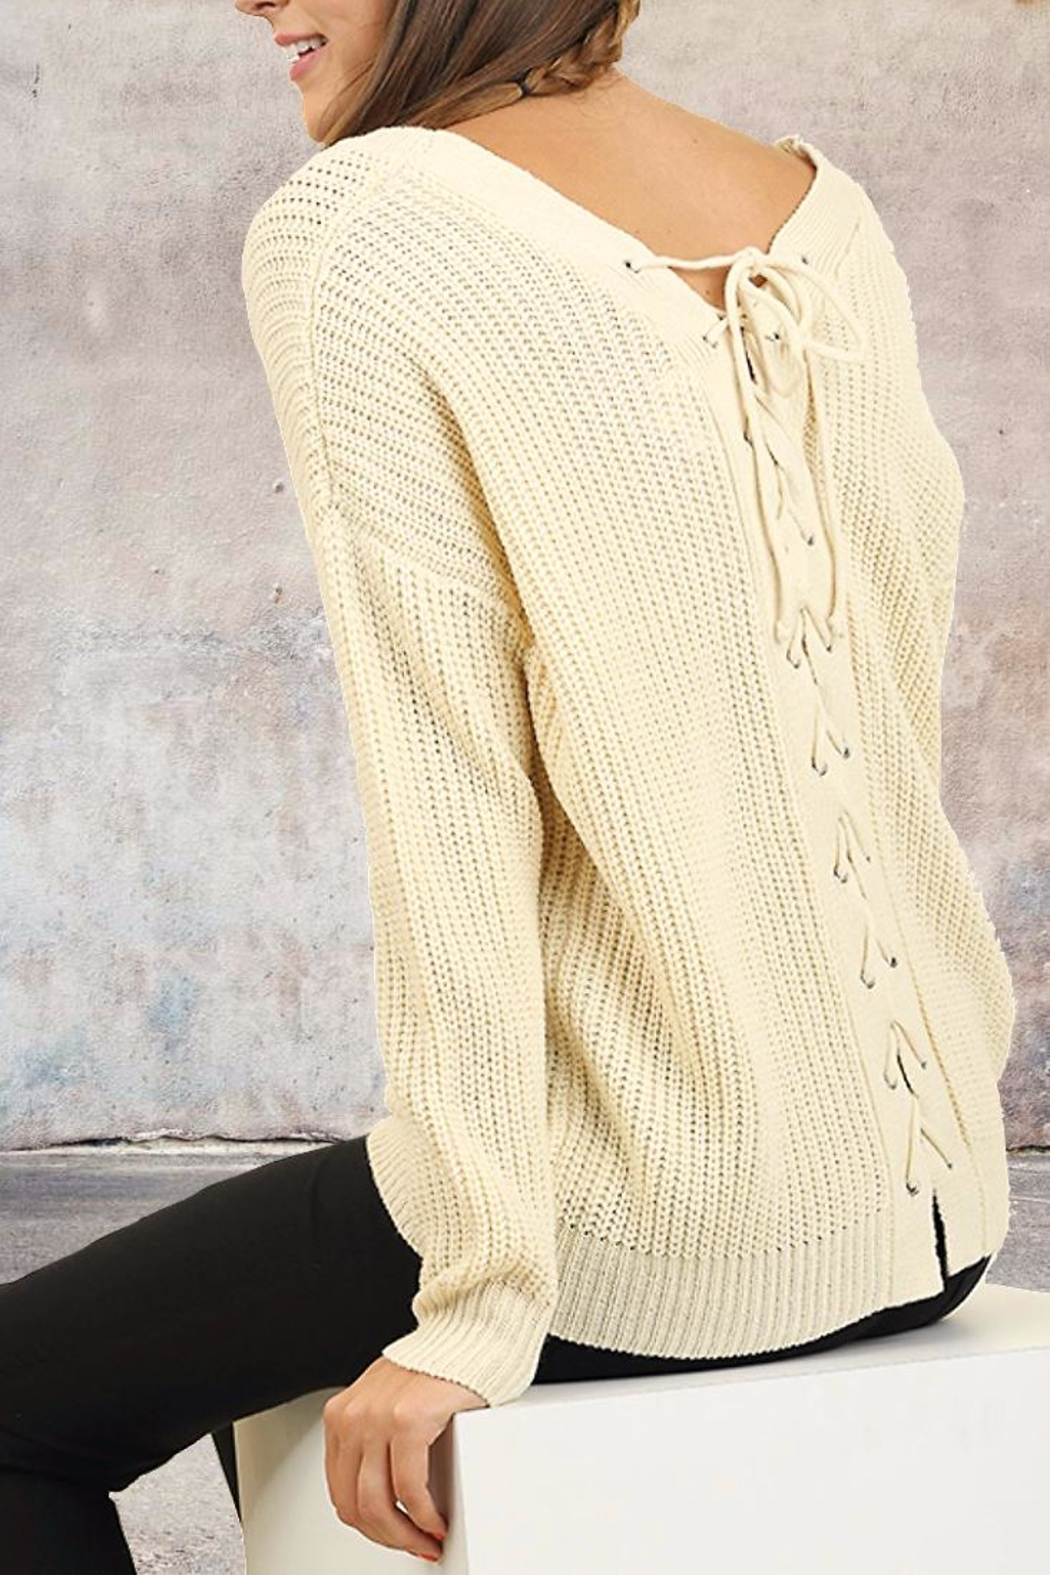 People Outfitter Tie Back Sweater - Main Image